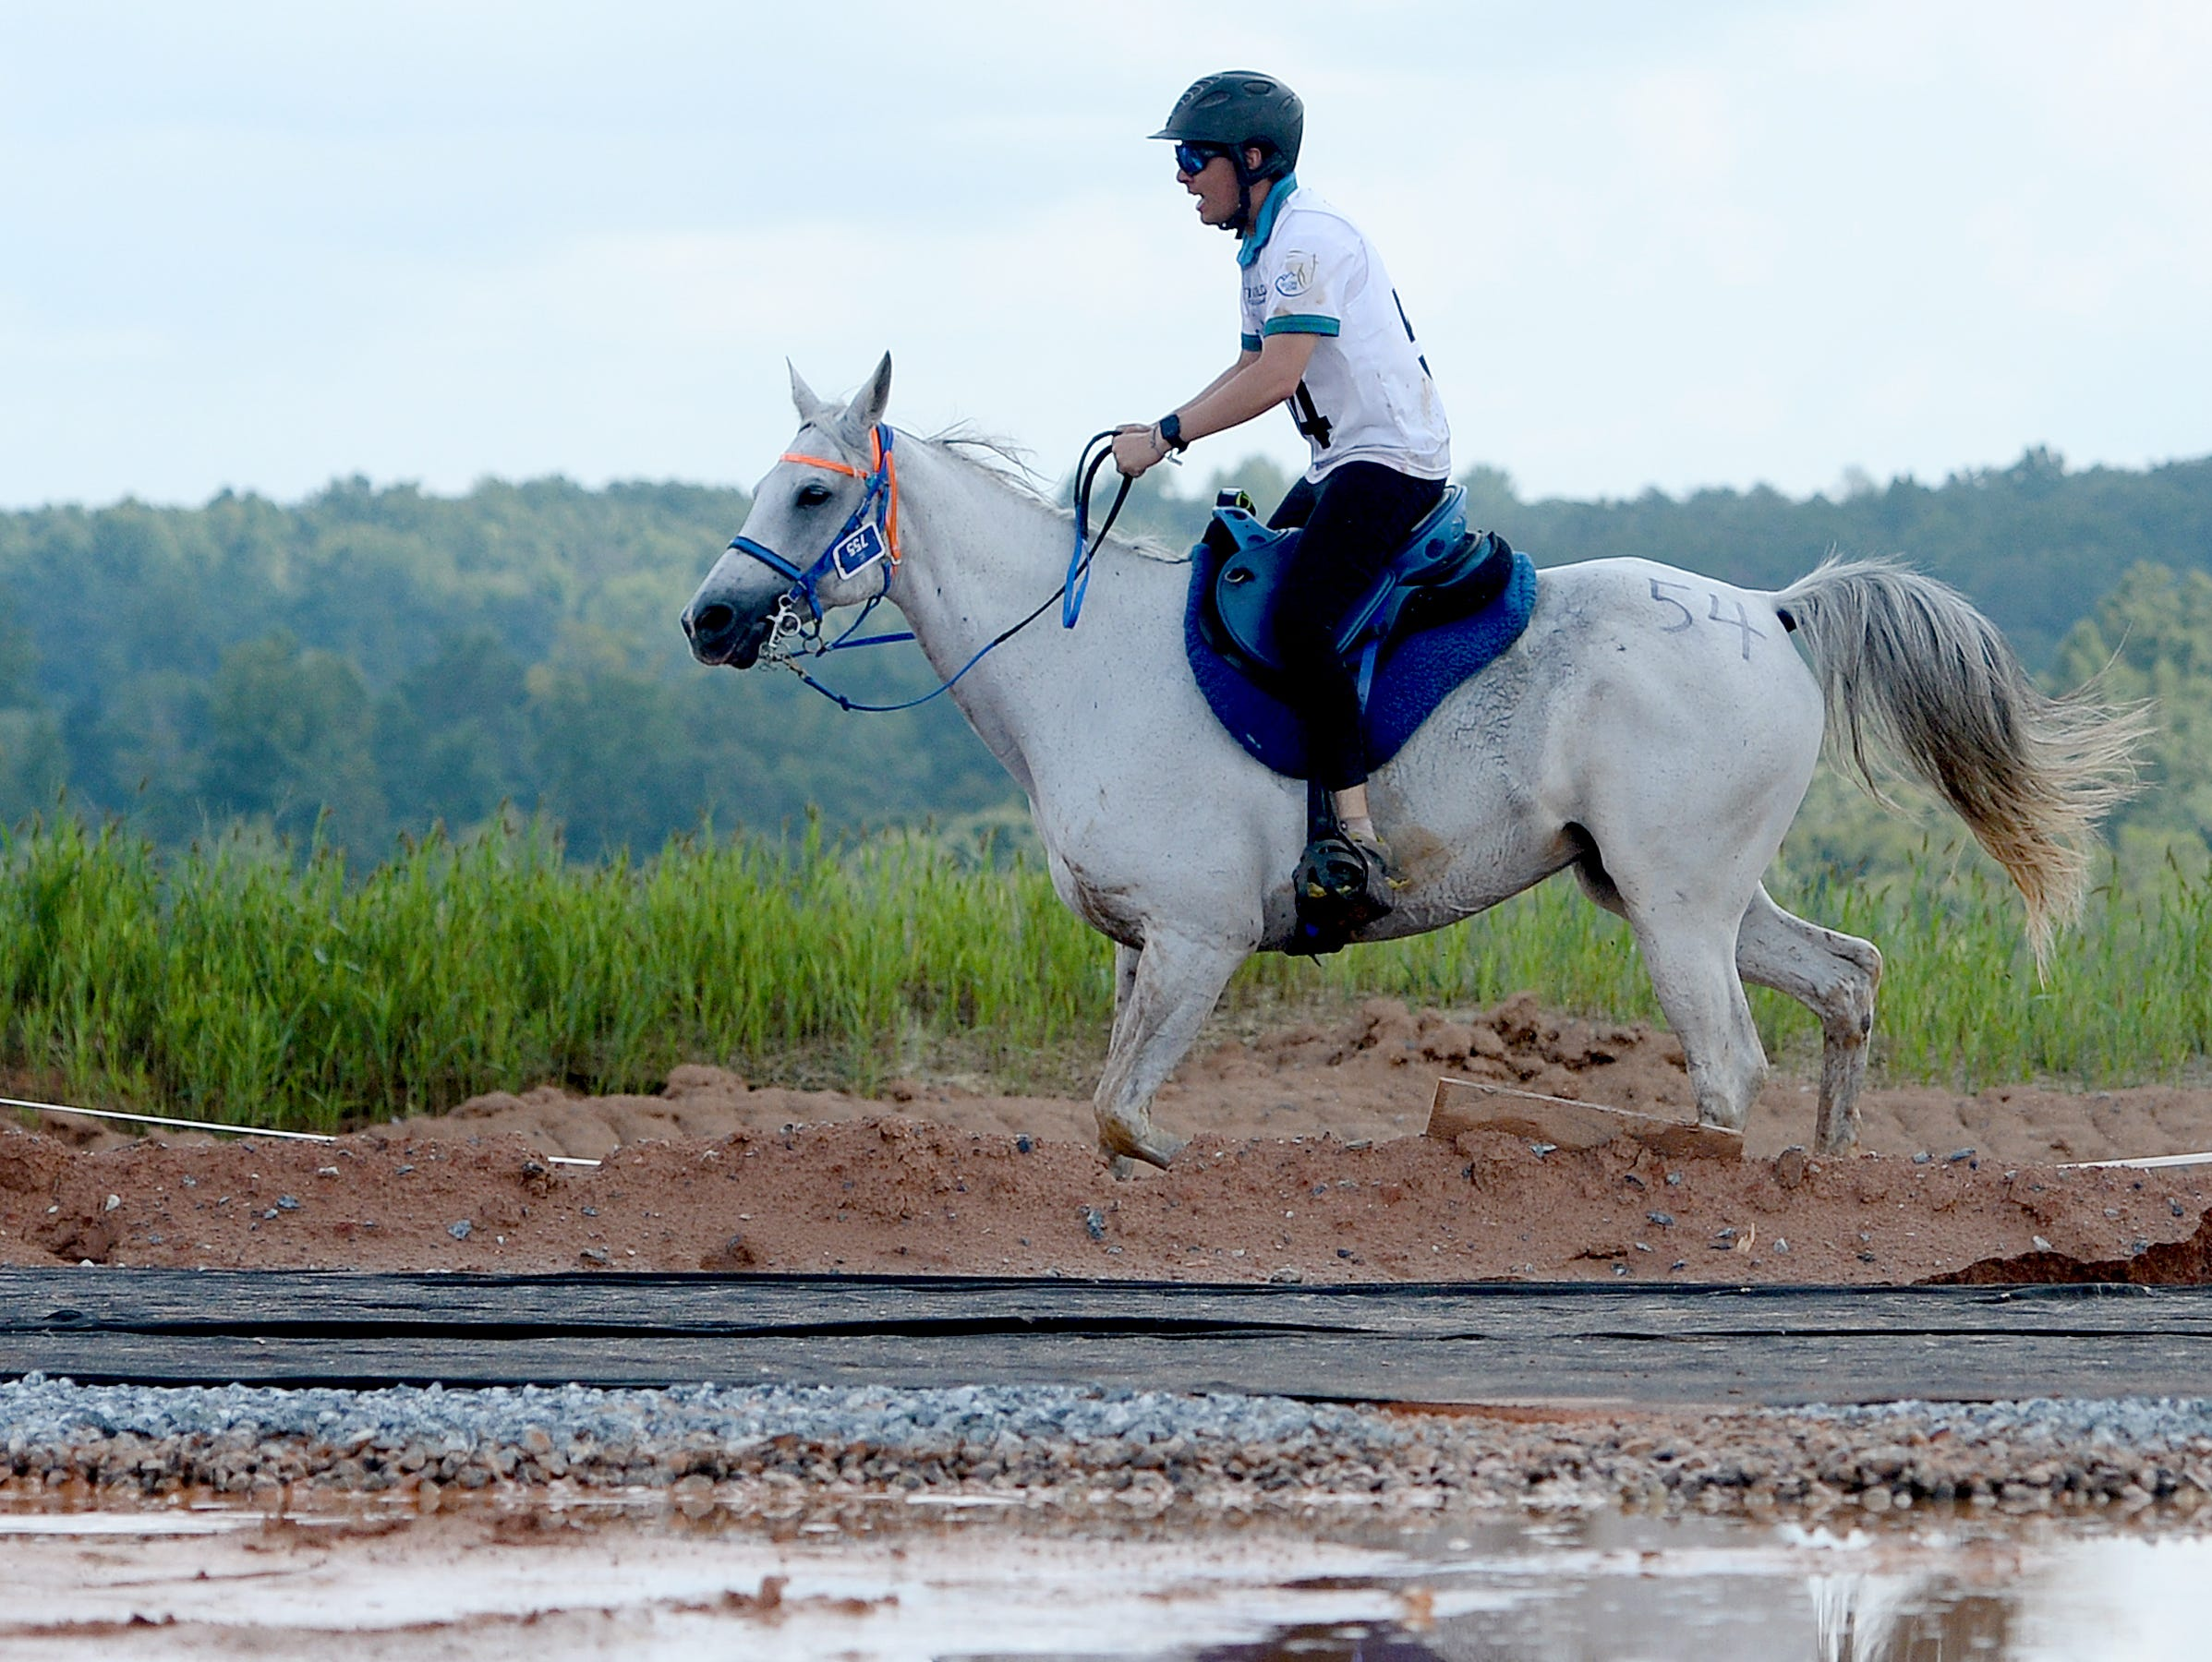 Guatemalan rider Maurico Evans, on his horse, Zara Me, sets out for another lap of the Endurance race during the FEI World Equestrian Games at the Tryon International Equestrian Center on Sept. 12, 2018.